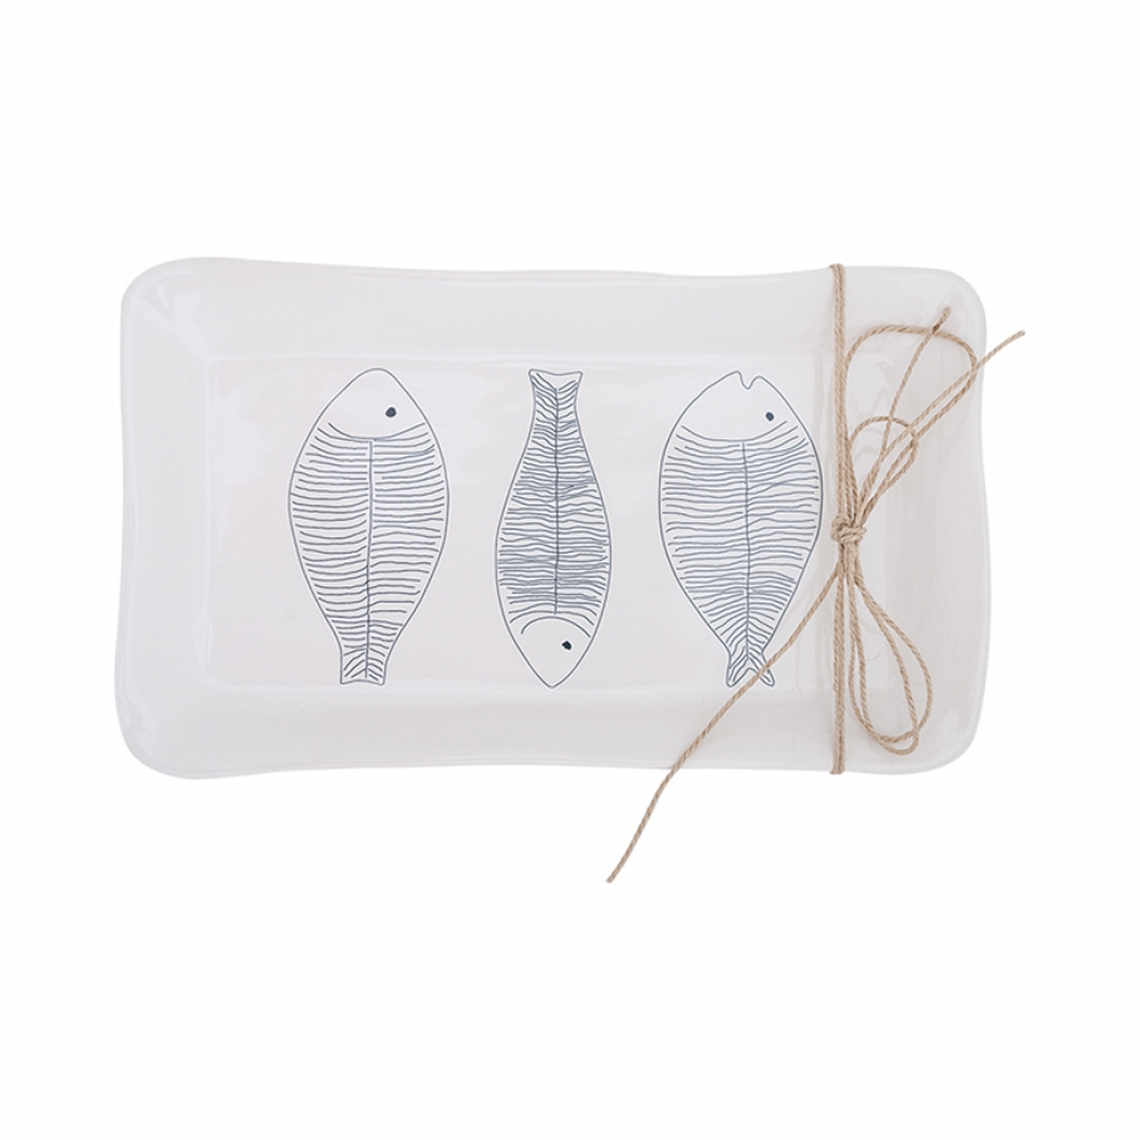 Fishes tray